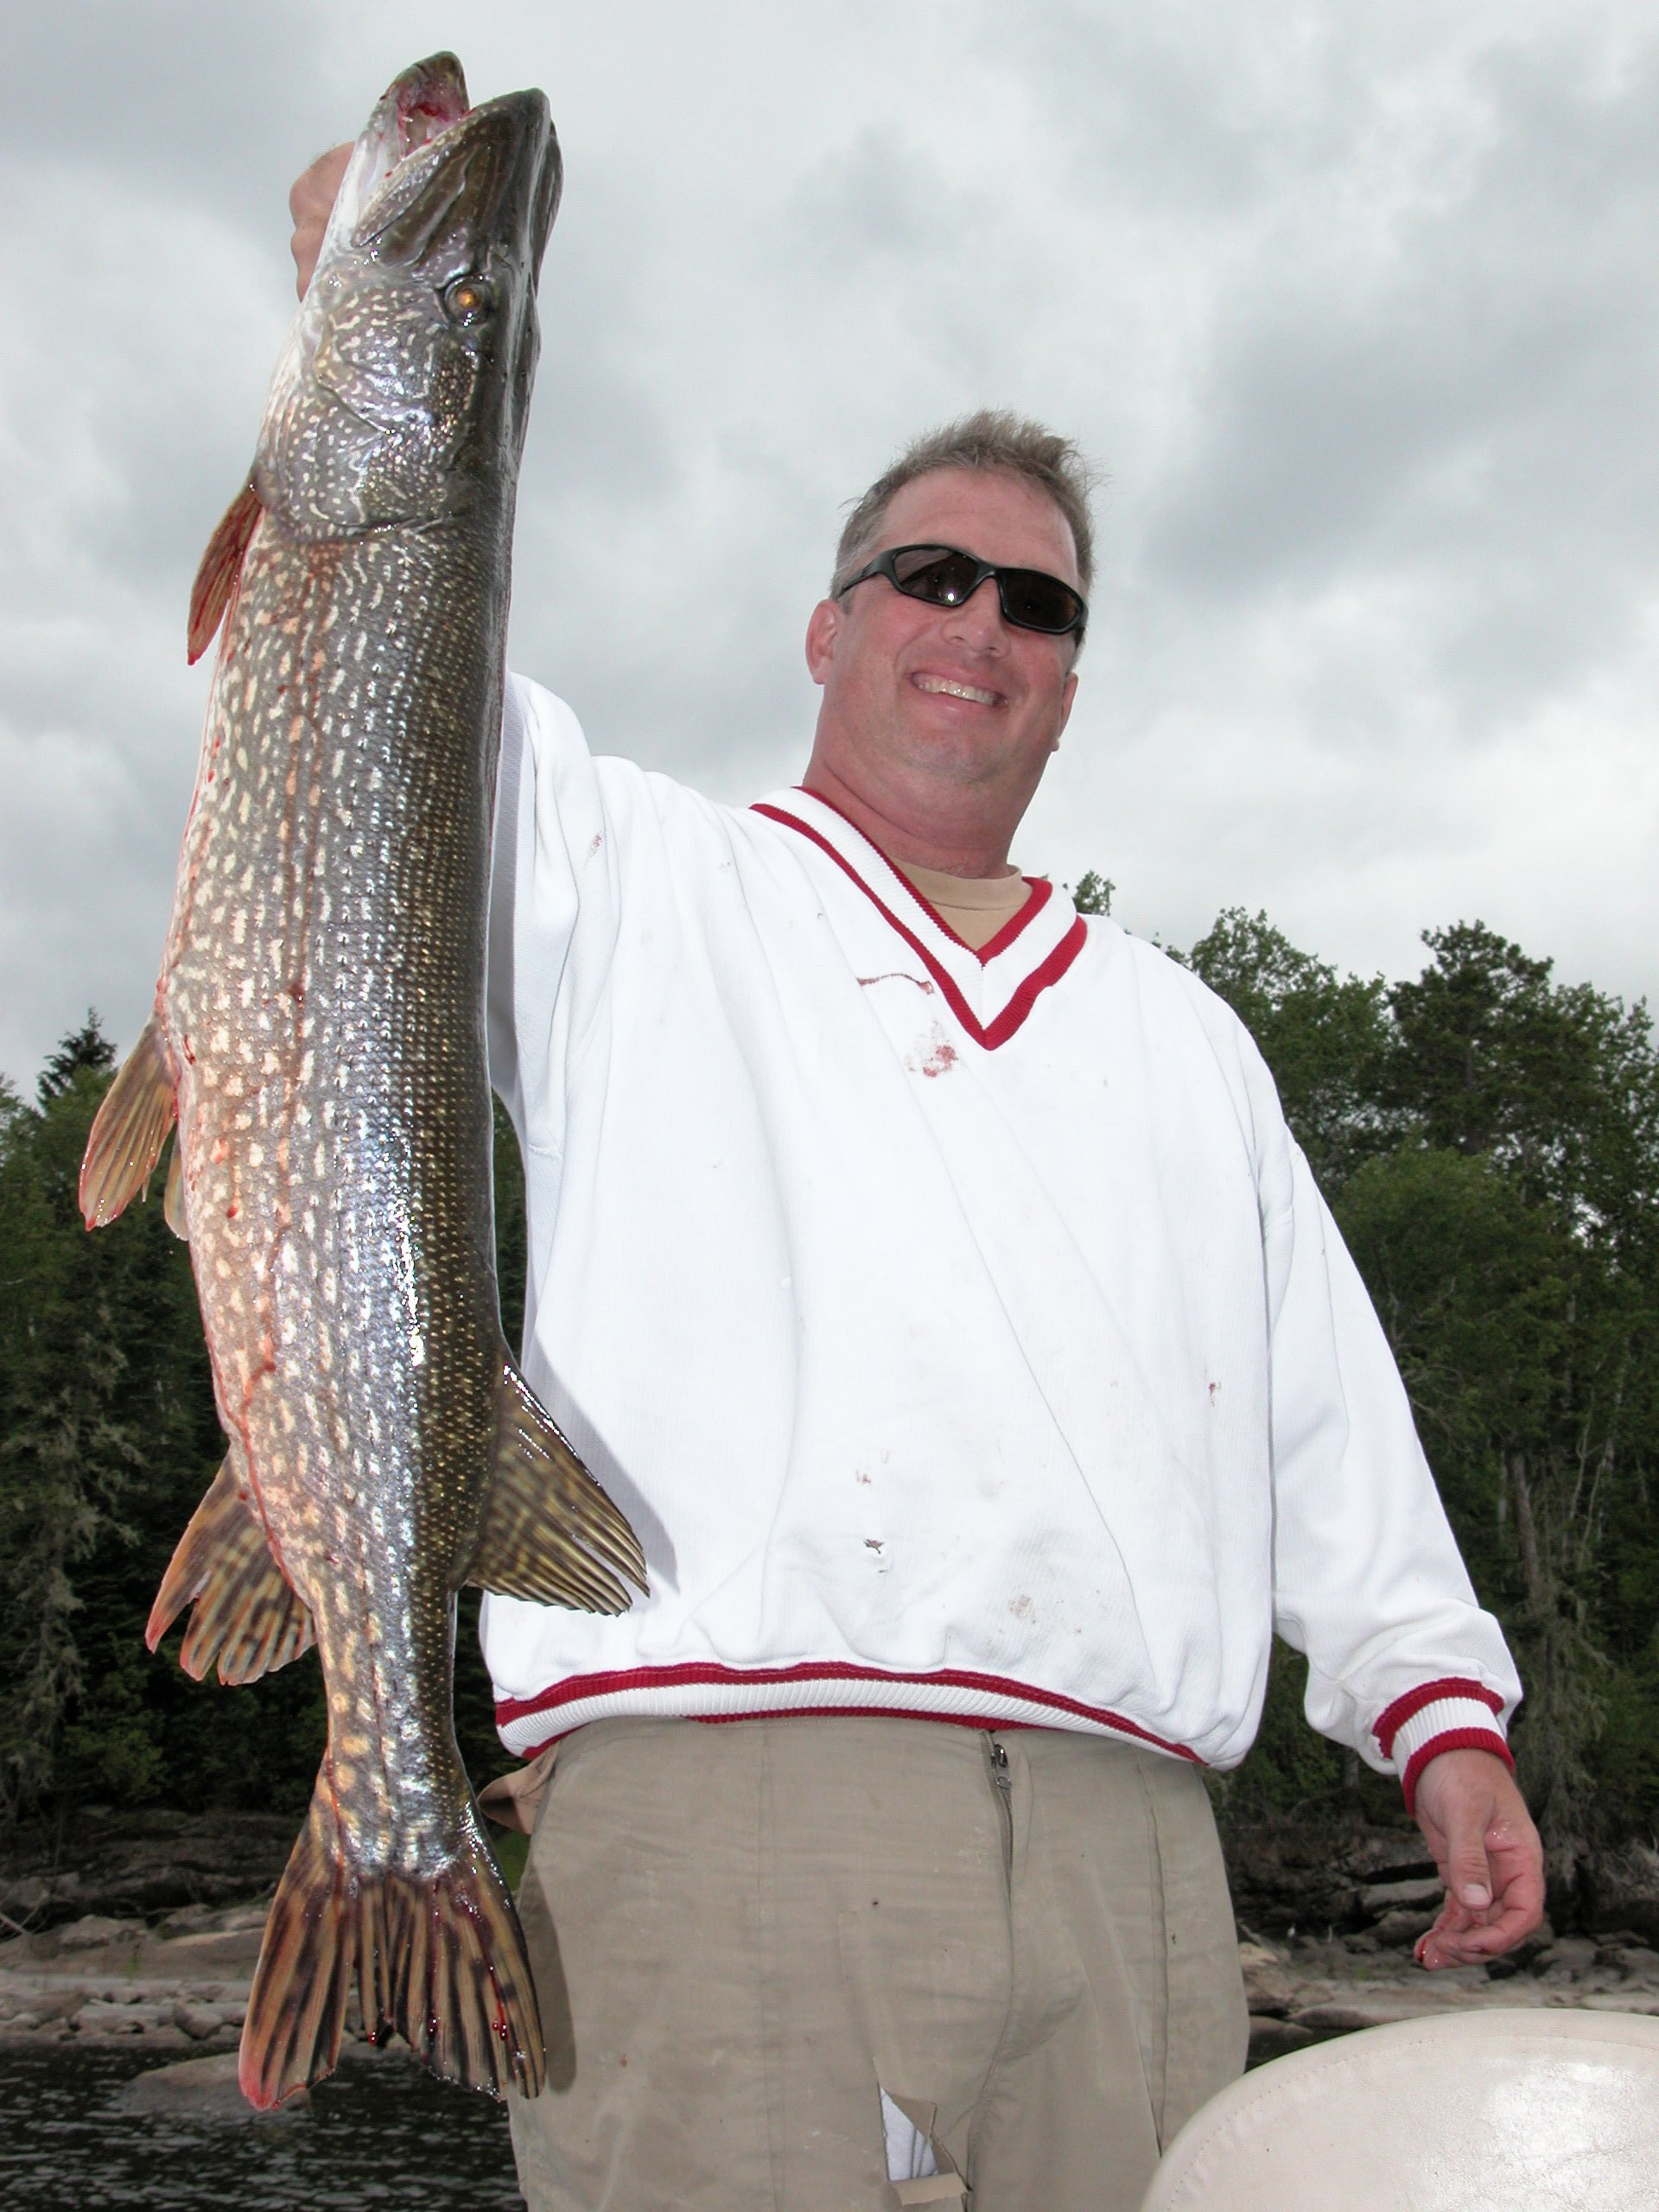 Northern Pike caught at Clay Lake, Northwinds Canadian Outfitters